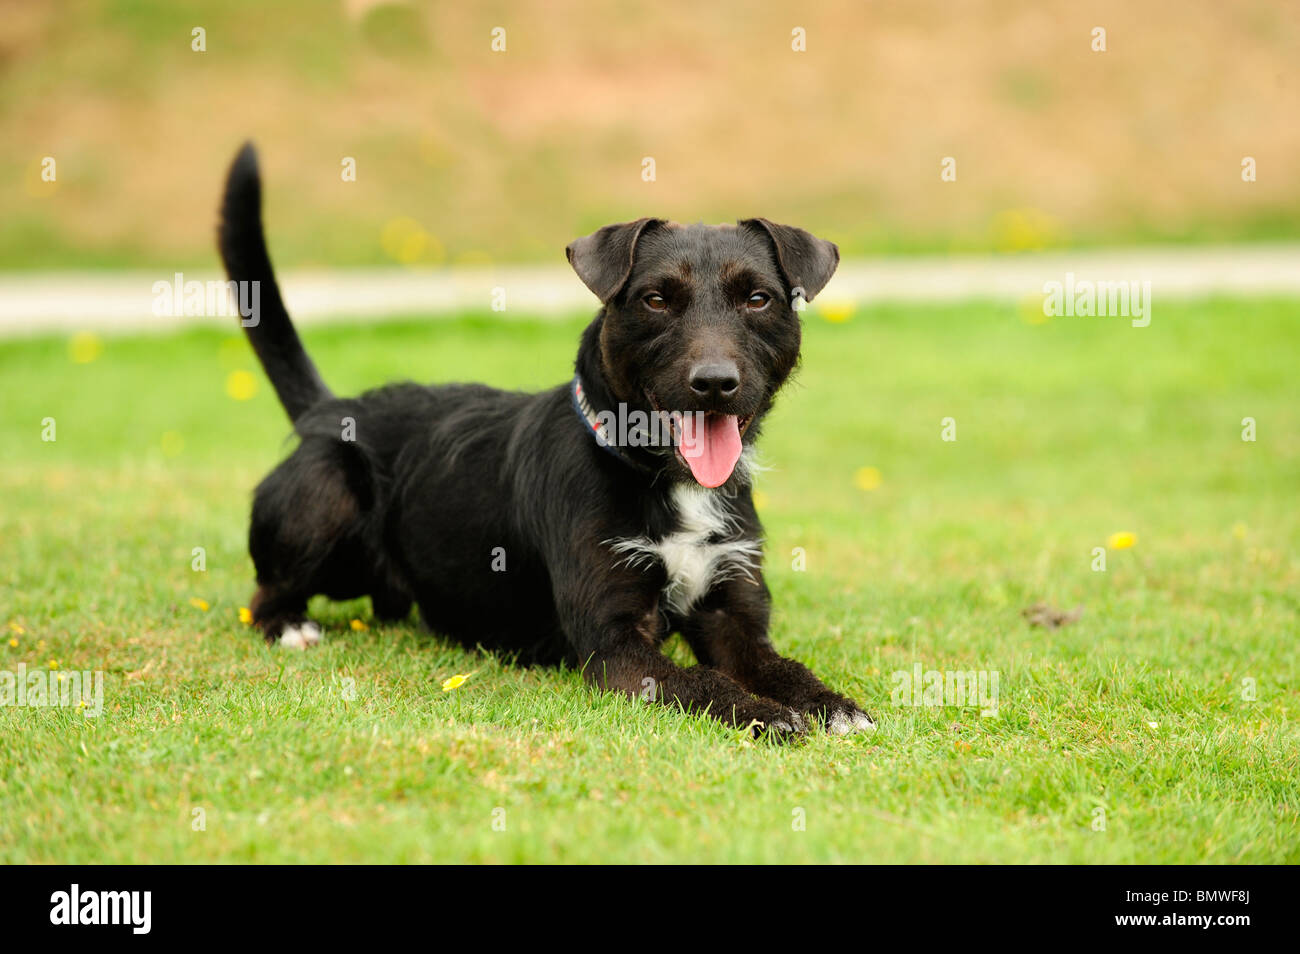 mongrel dog looking to camera - Stock Image